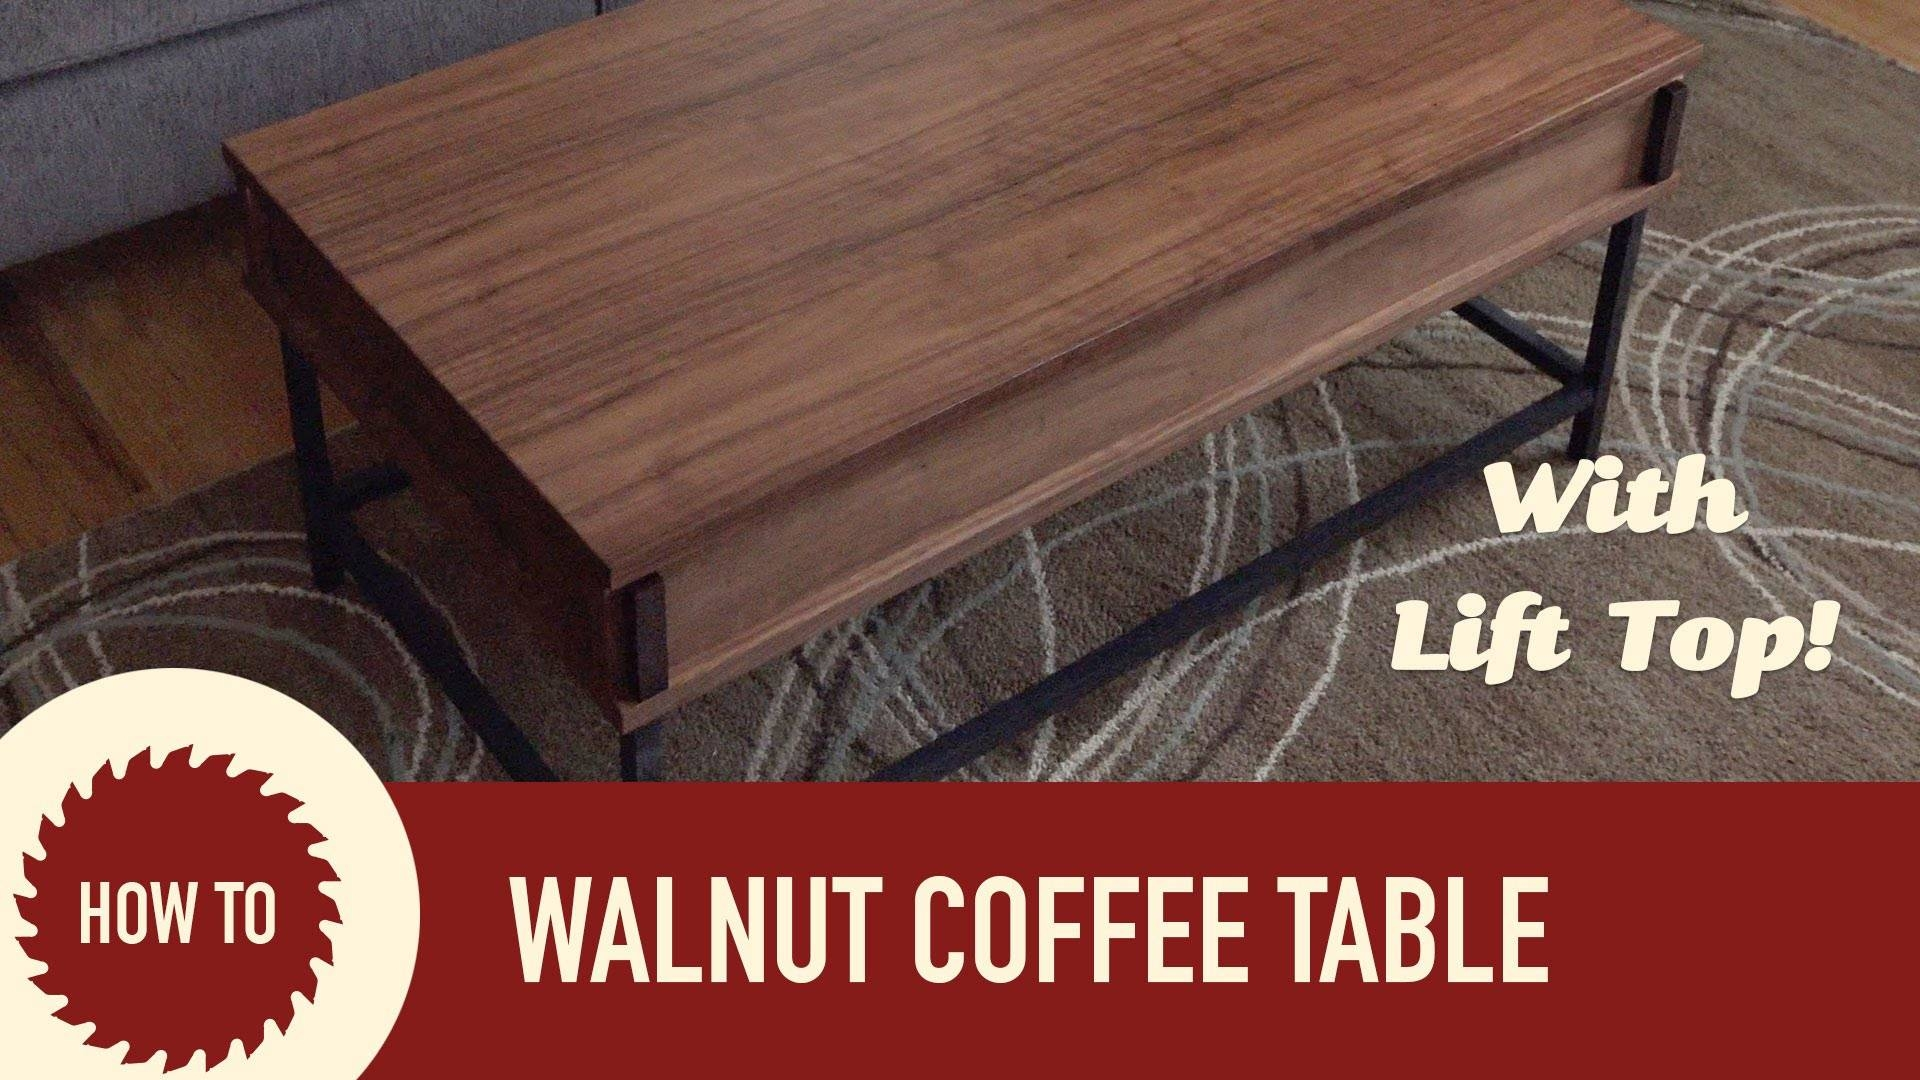 Easy To Make Coffee Table With Lift Up Top - Youtube pertaining to Coffee Tables With Lift Up Top (Image 14 of 30)